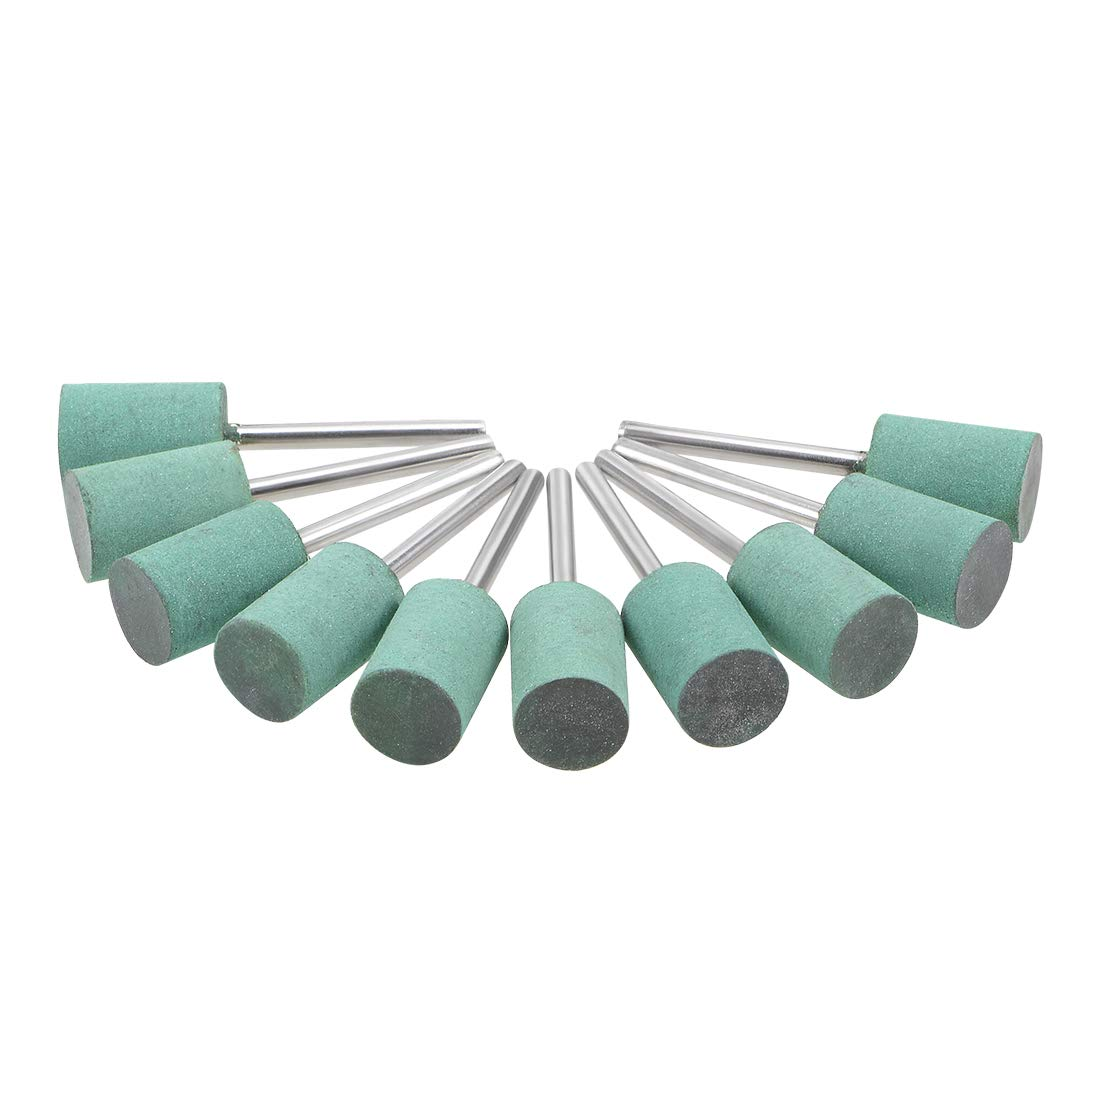 uxcell 10mm Rubber Polishing Burrs Bits Cylinder with 1//8-inch Shank Buffing Wheels for Rotary Tools Green 10 Pcs